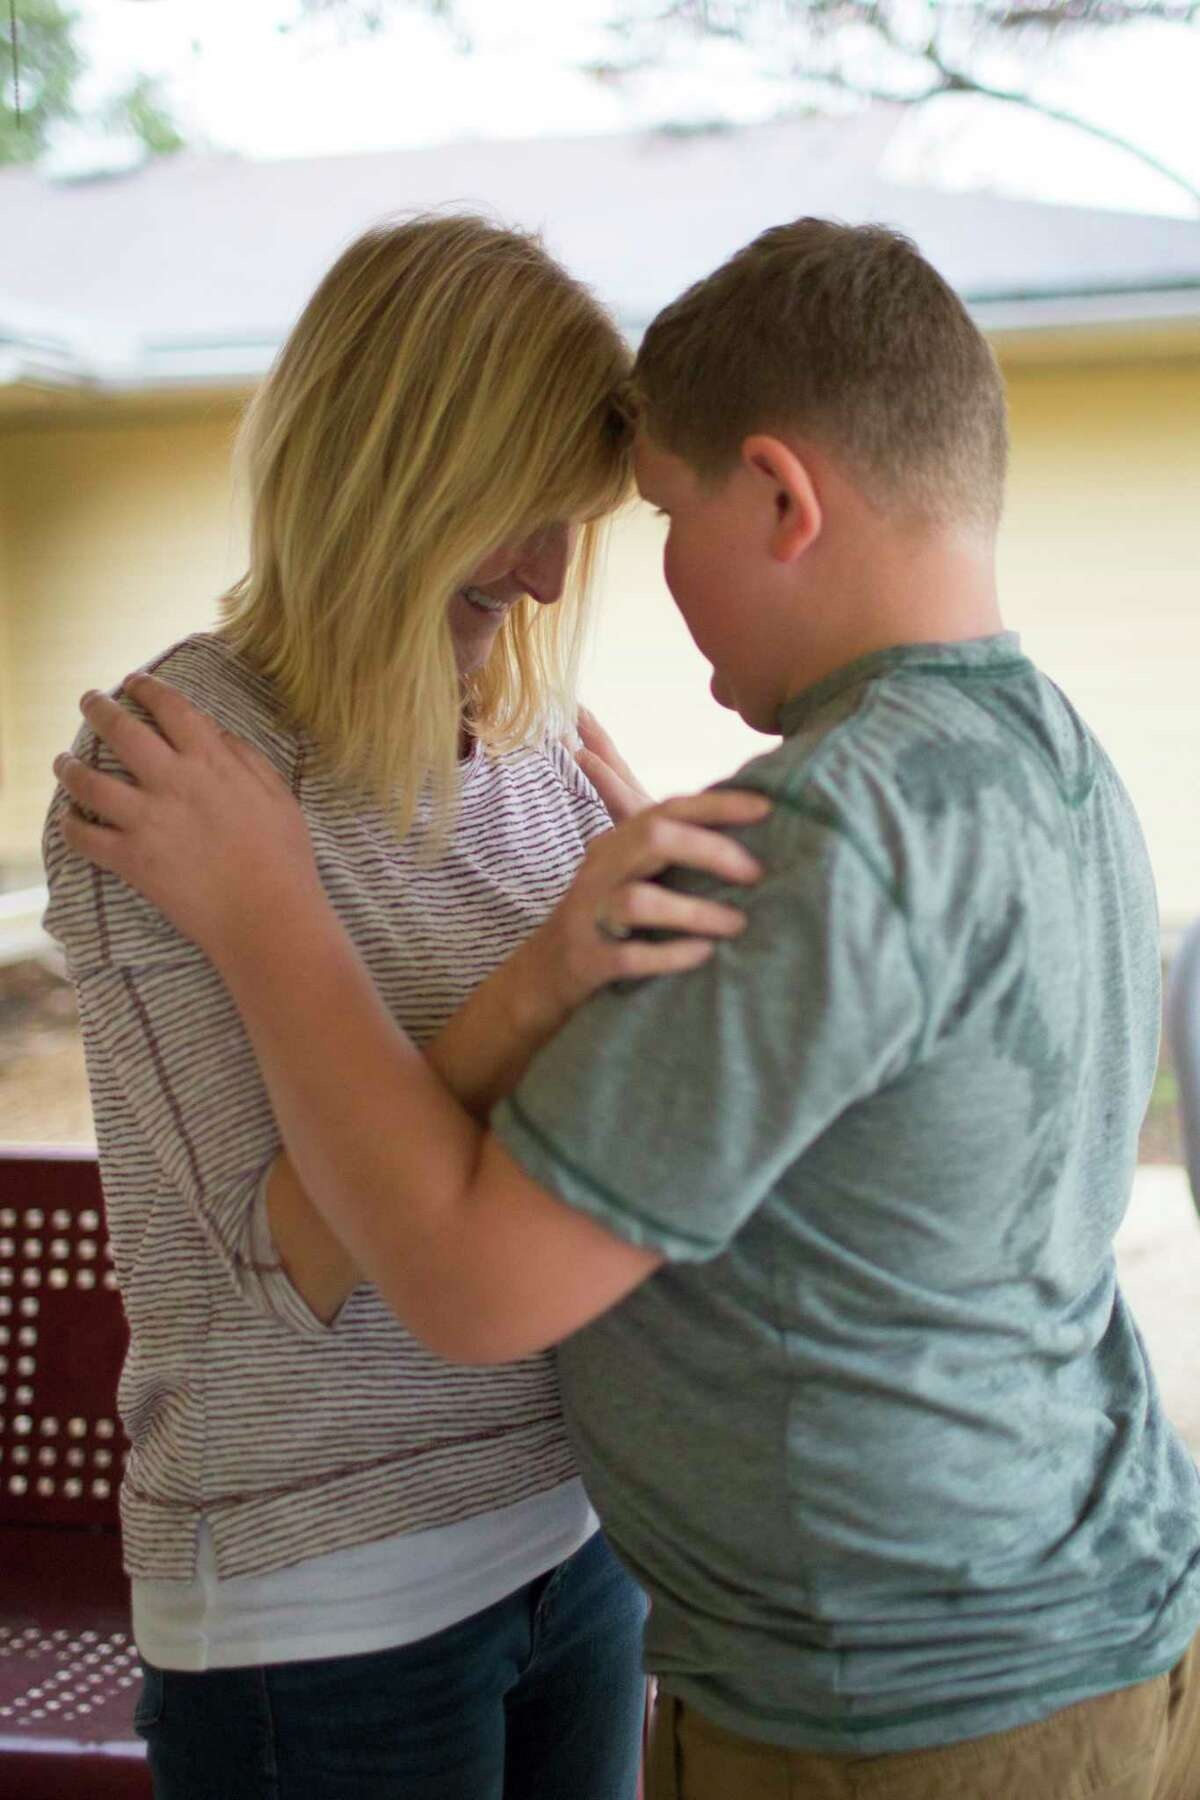 Julie Mele and her 12-year-old son share a moment in the backyard of their home at Fort Hood in Killeen, where her husband was stationed.